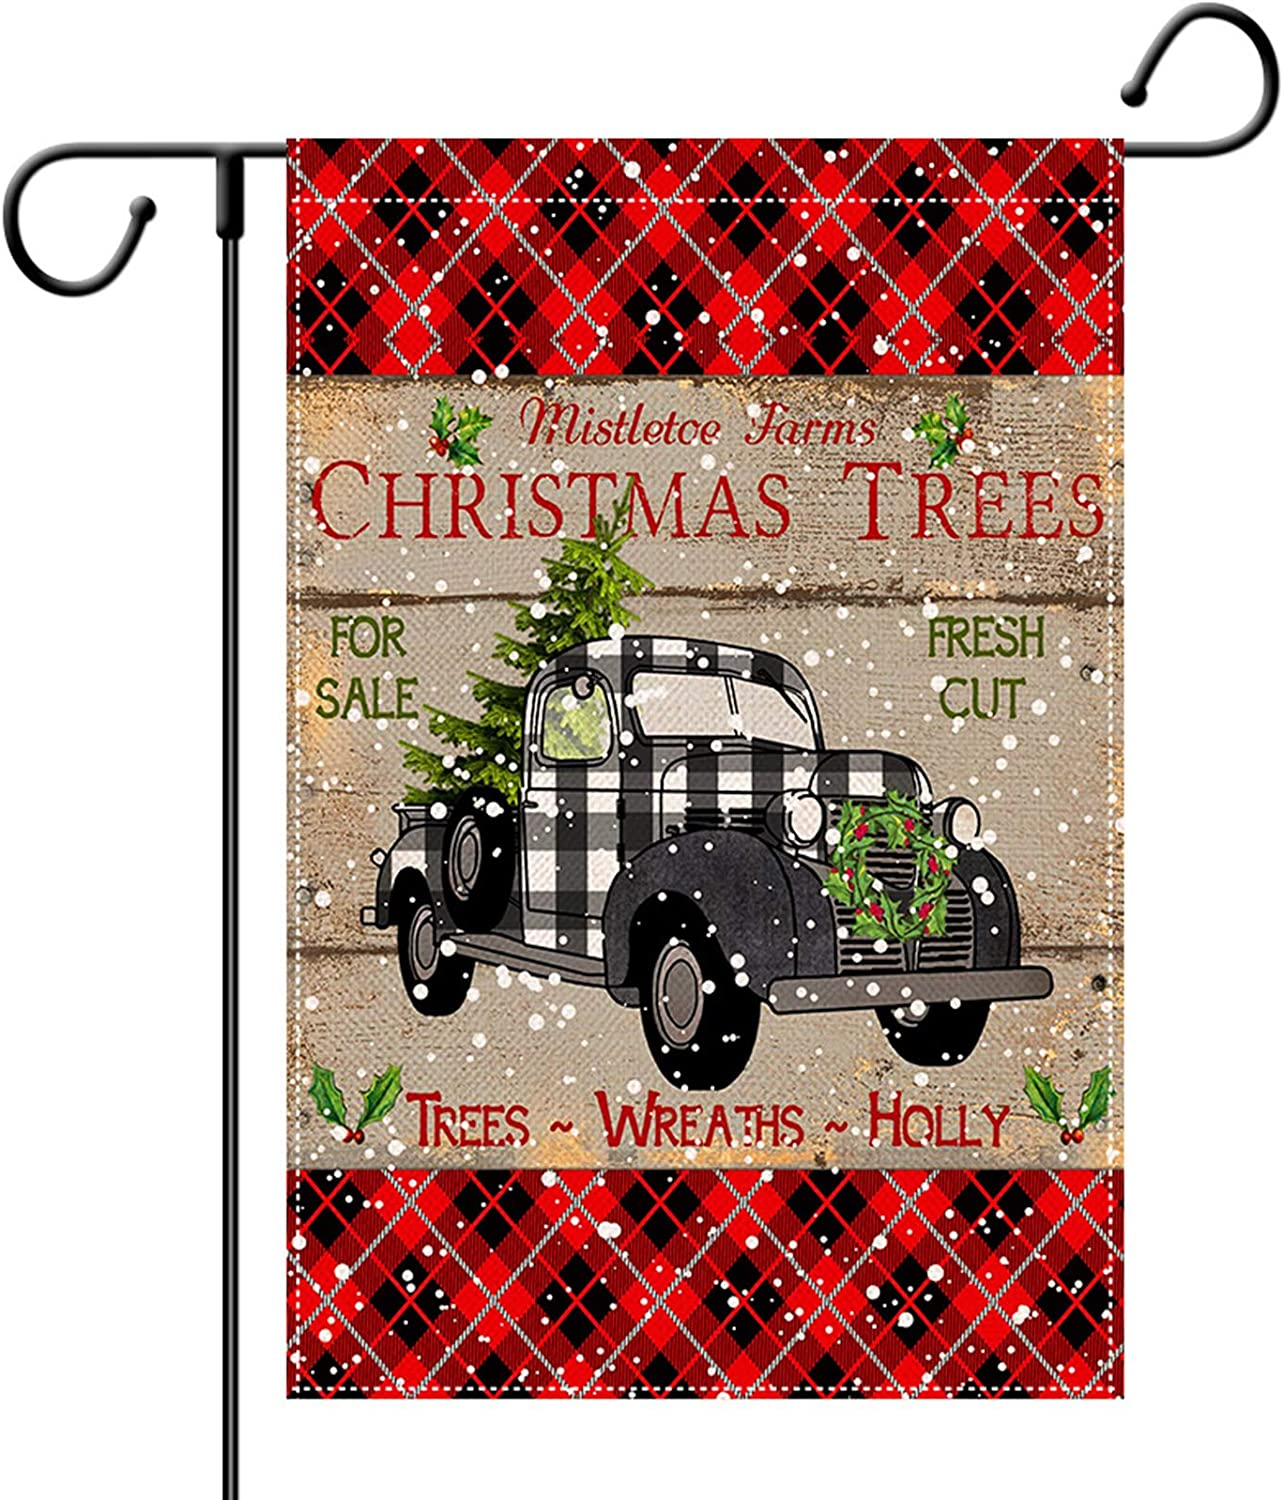 EKOREST Christmas Garden Flag for Outdoor Truck Buffalo Check Plaid Vertical Double Sided 12.5x18 Inch Christmas Decorations Marry Christmas Yard Sign Winter Xmas Decor for Farmhouse Porch Patio